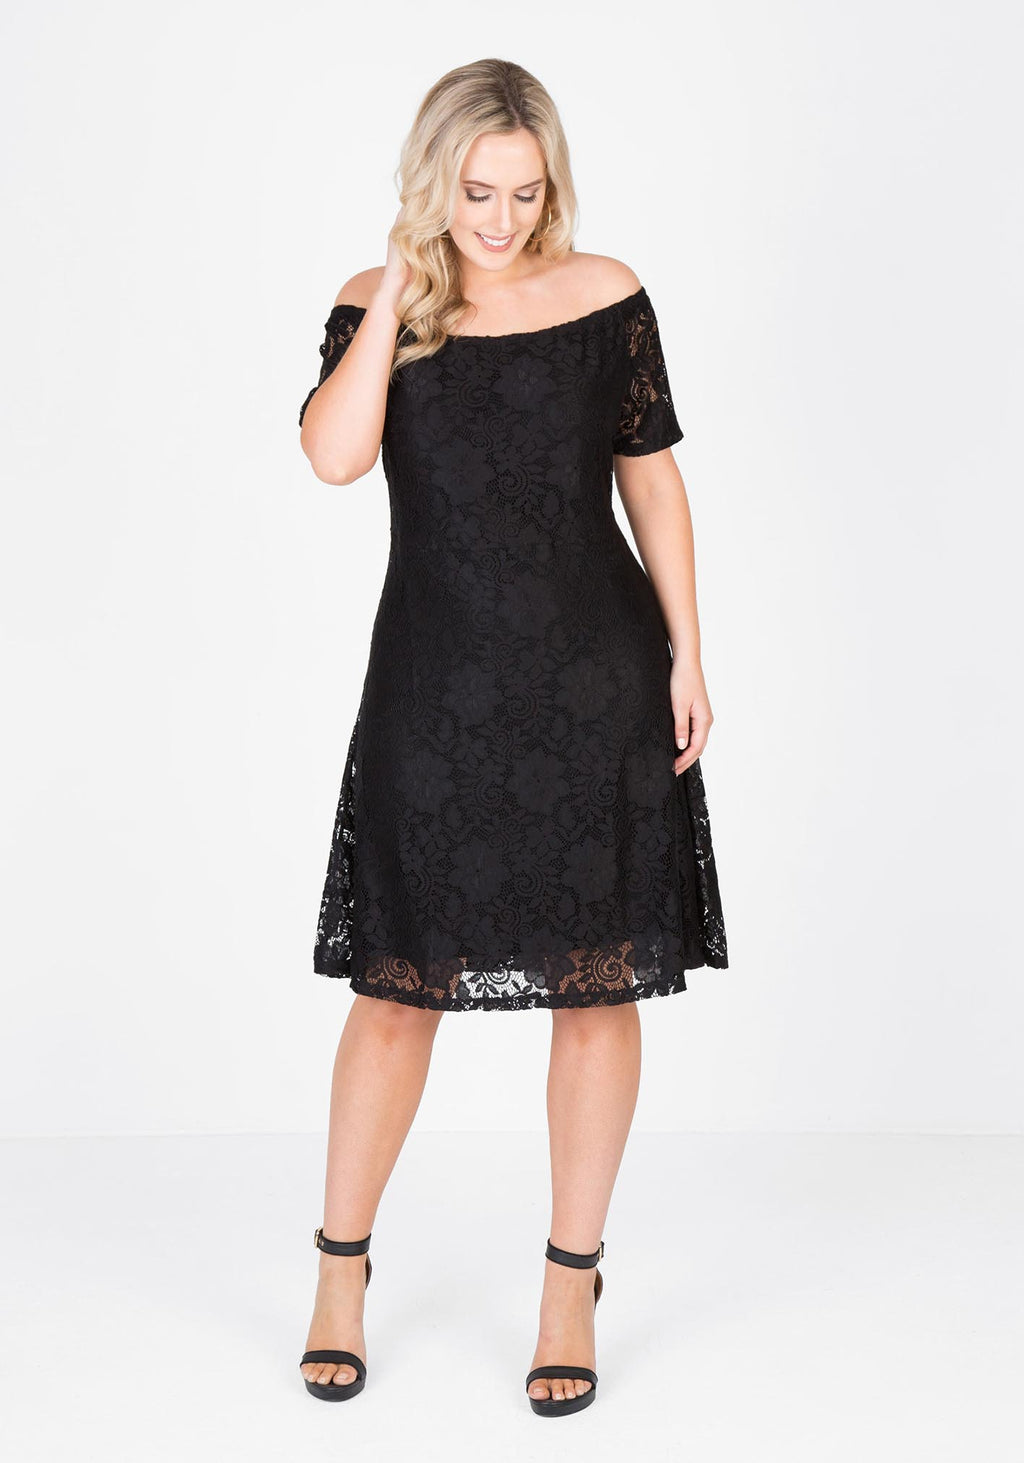 Off the shoulder stretch lace dress - Black